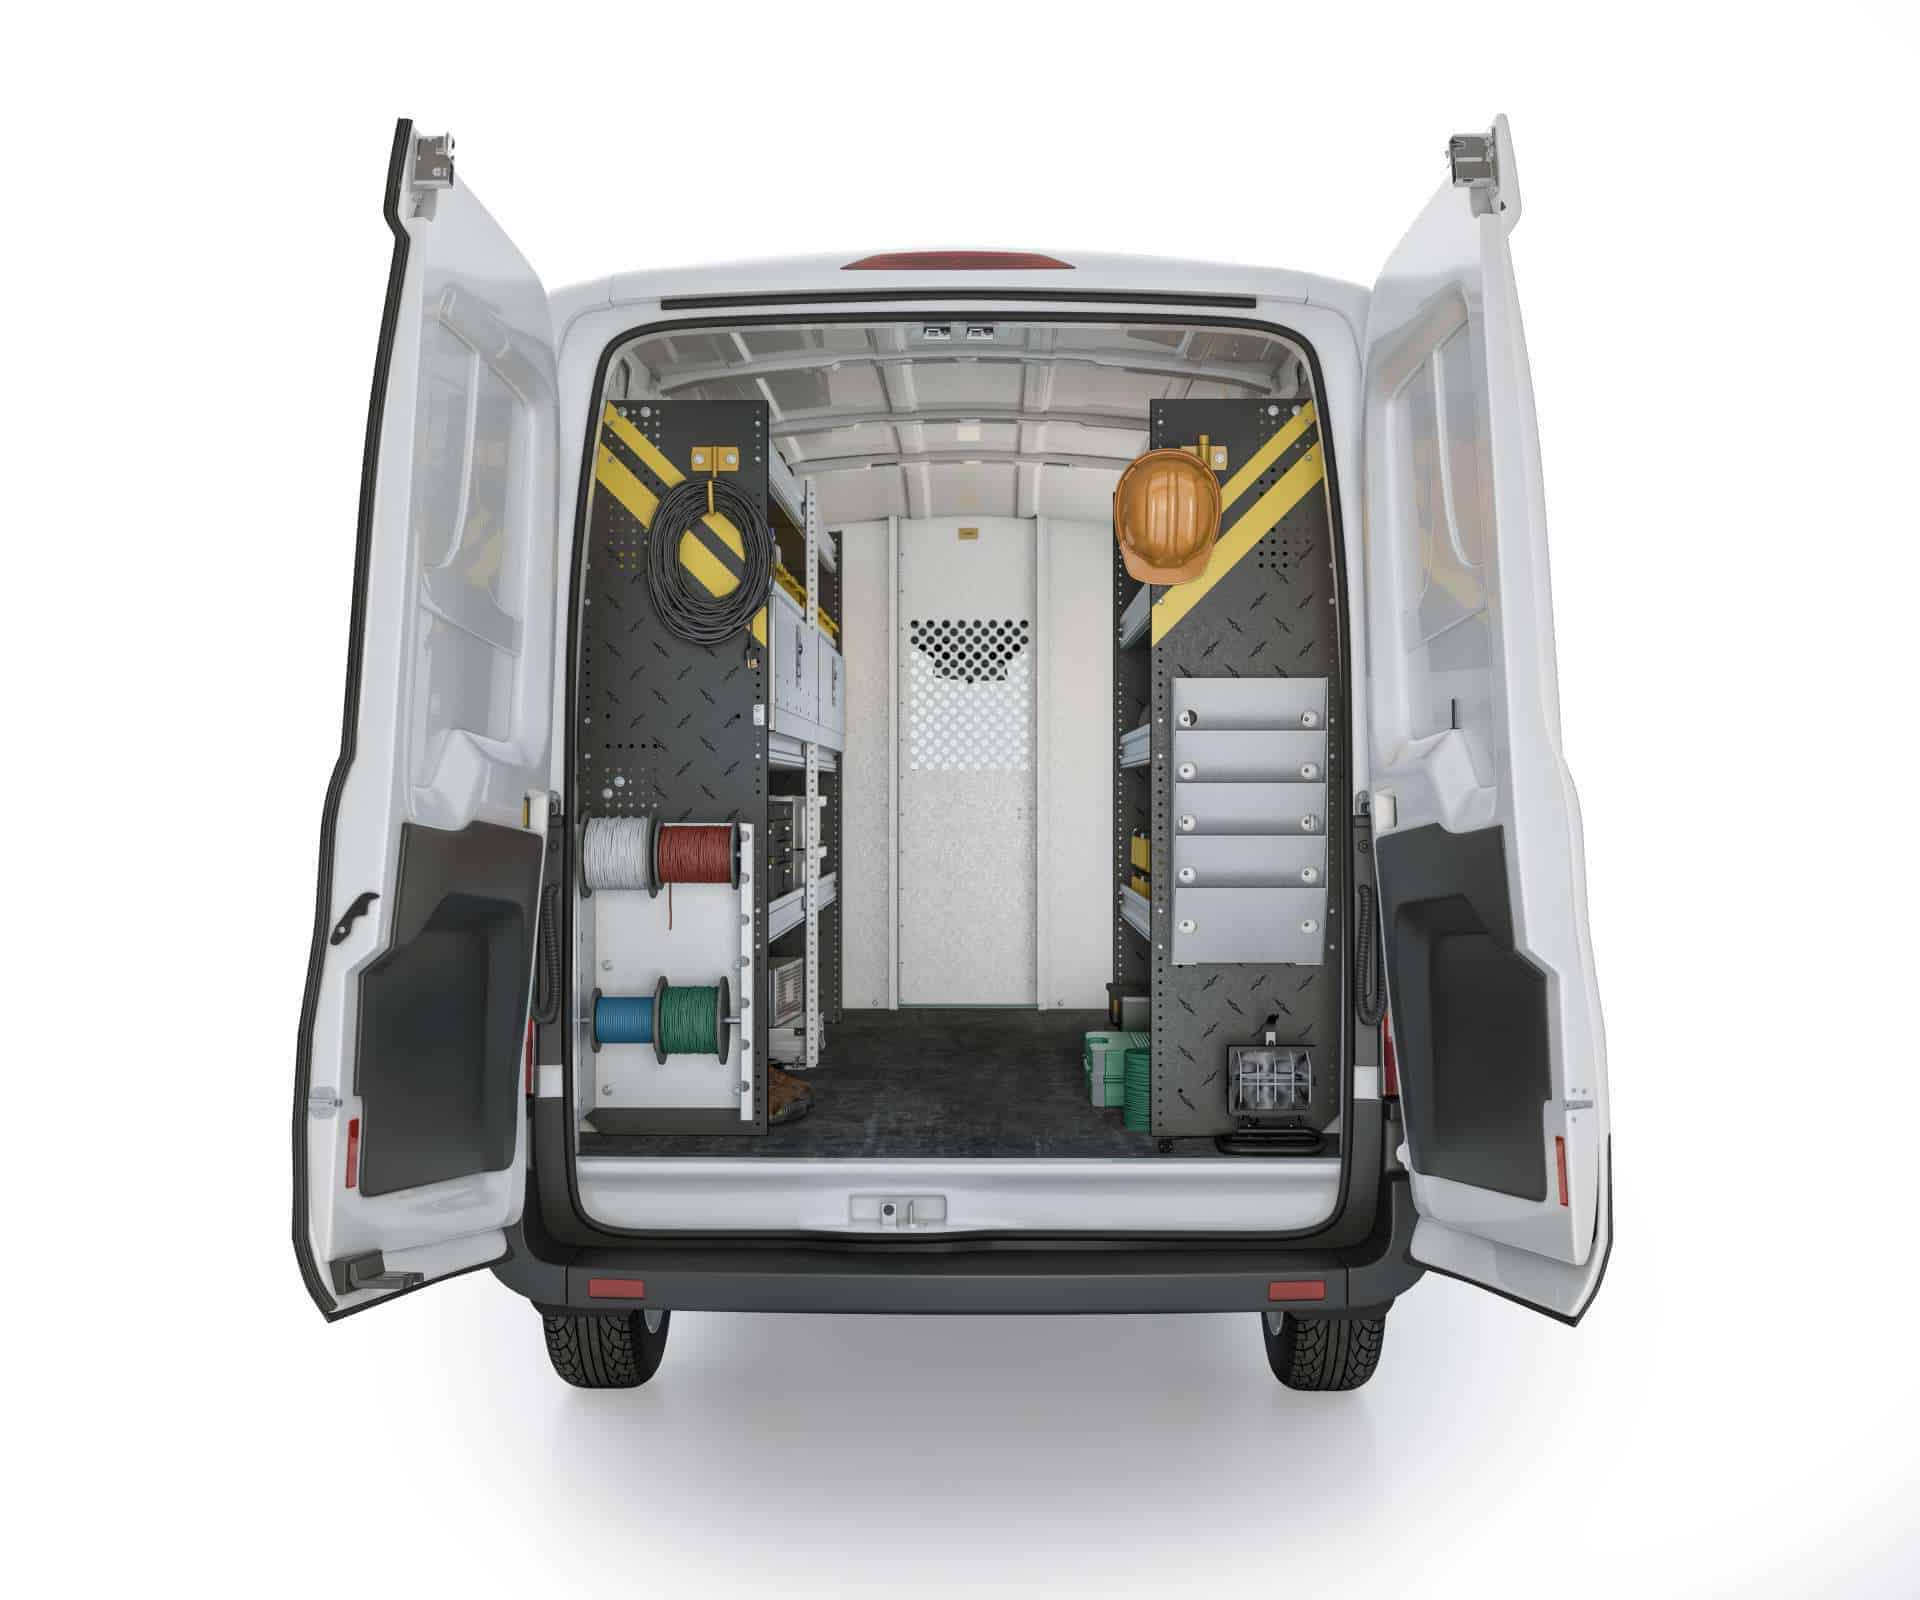 Ford Transit Electrical Package, FTM-11 Installed, Rear View